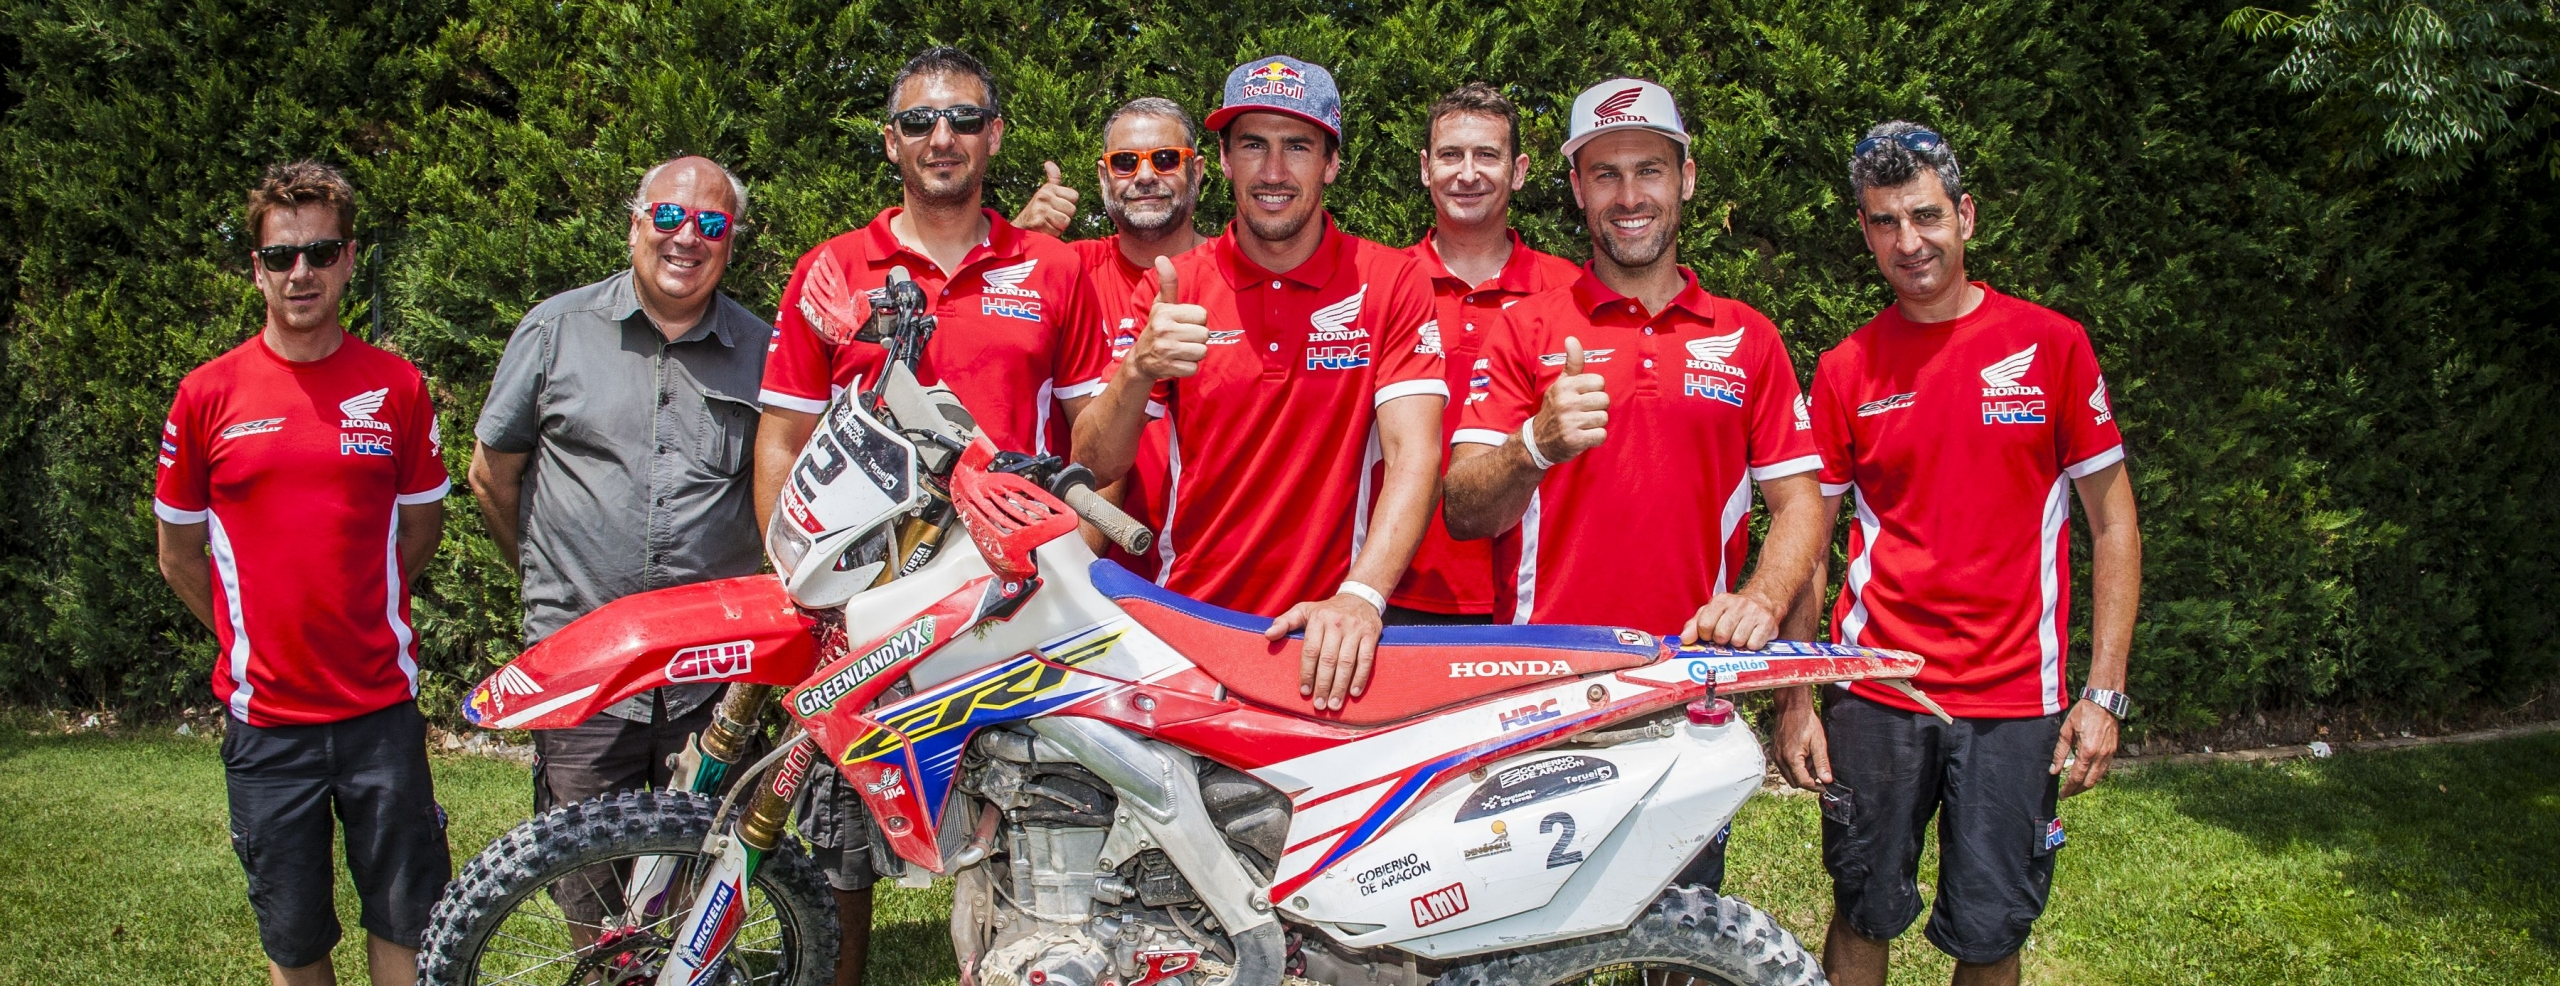 Victory for Barreda in the Baja Aragón 2016